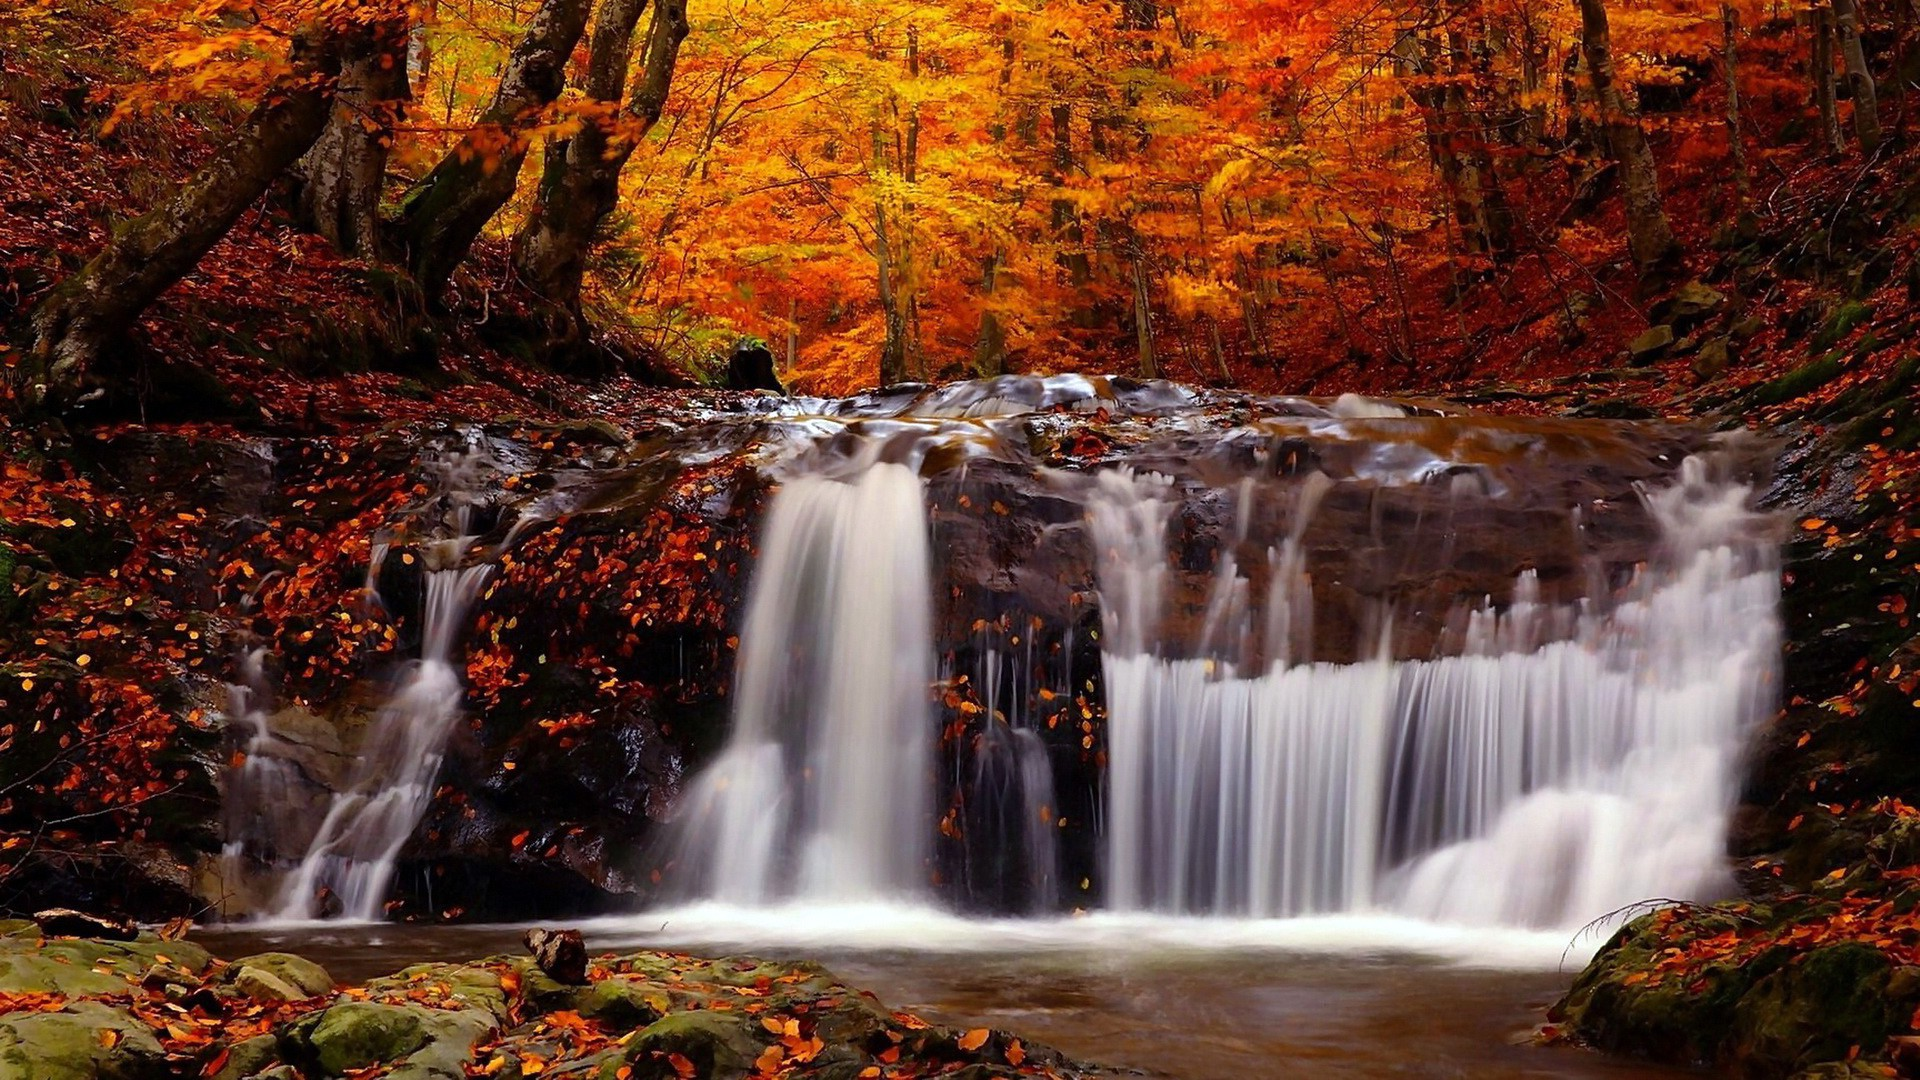 Fall Fantasy Wallpapers Nature Landscape Fall River Trees Waterfall